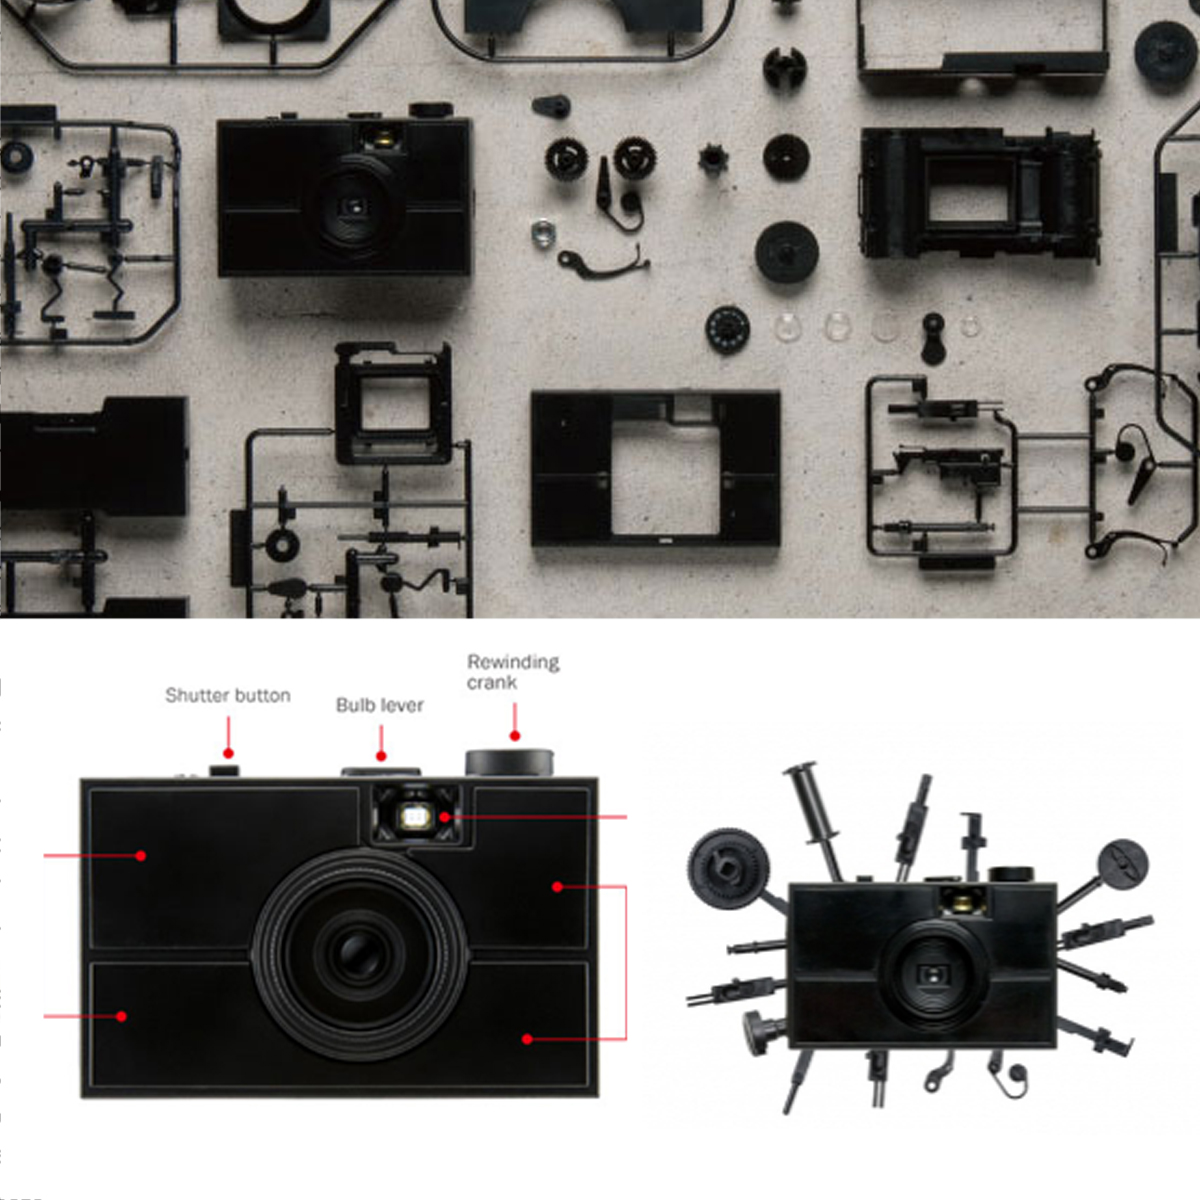 kit camera de kit camra extrieure diagral with kit camera de beautiful kit camera de recul. Black Bedroom Furniture Sets. Home Design Ideas